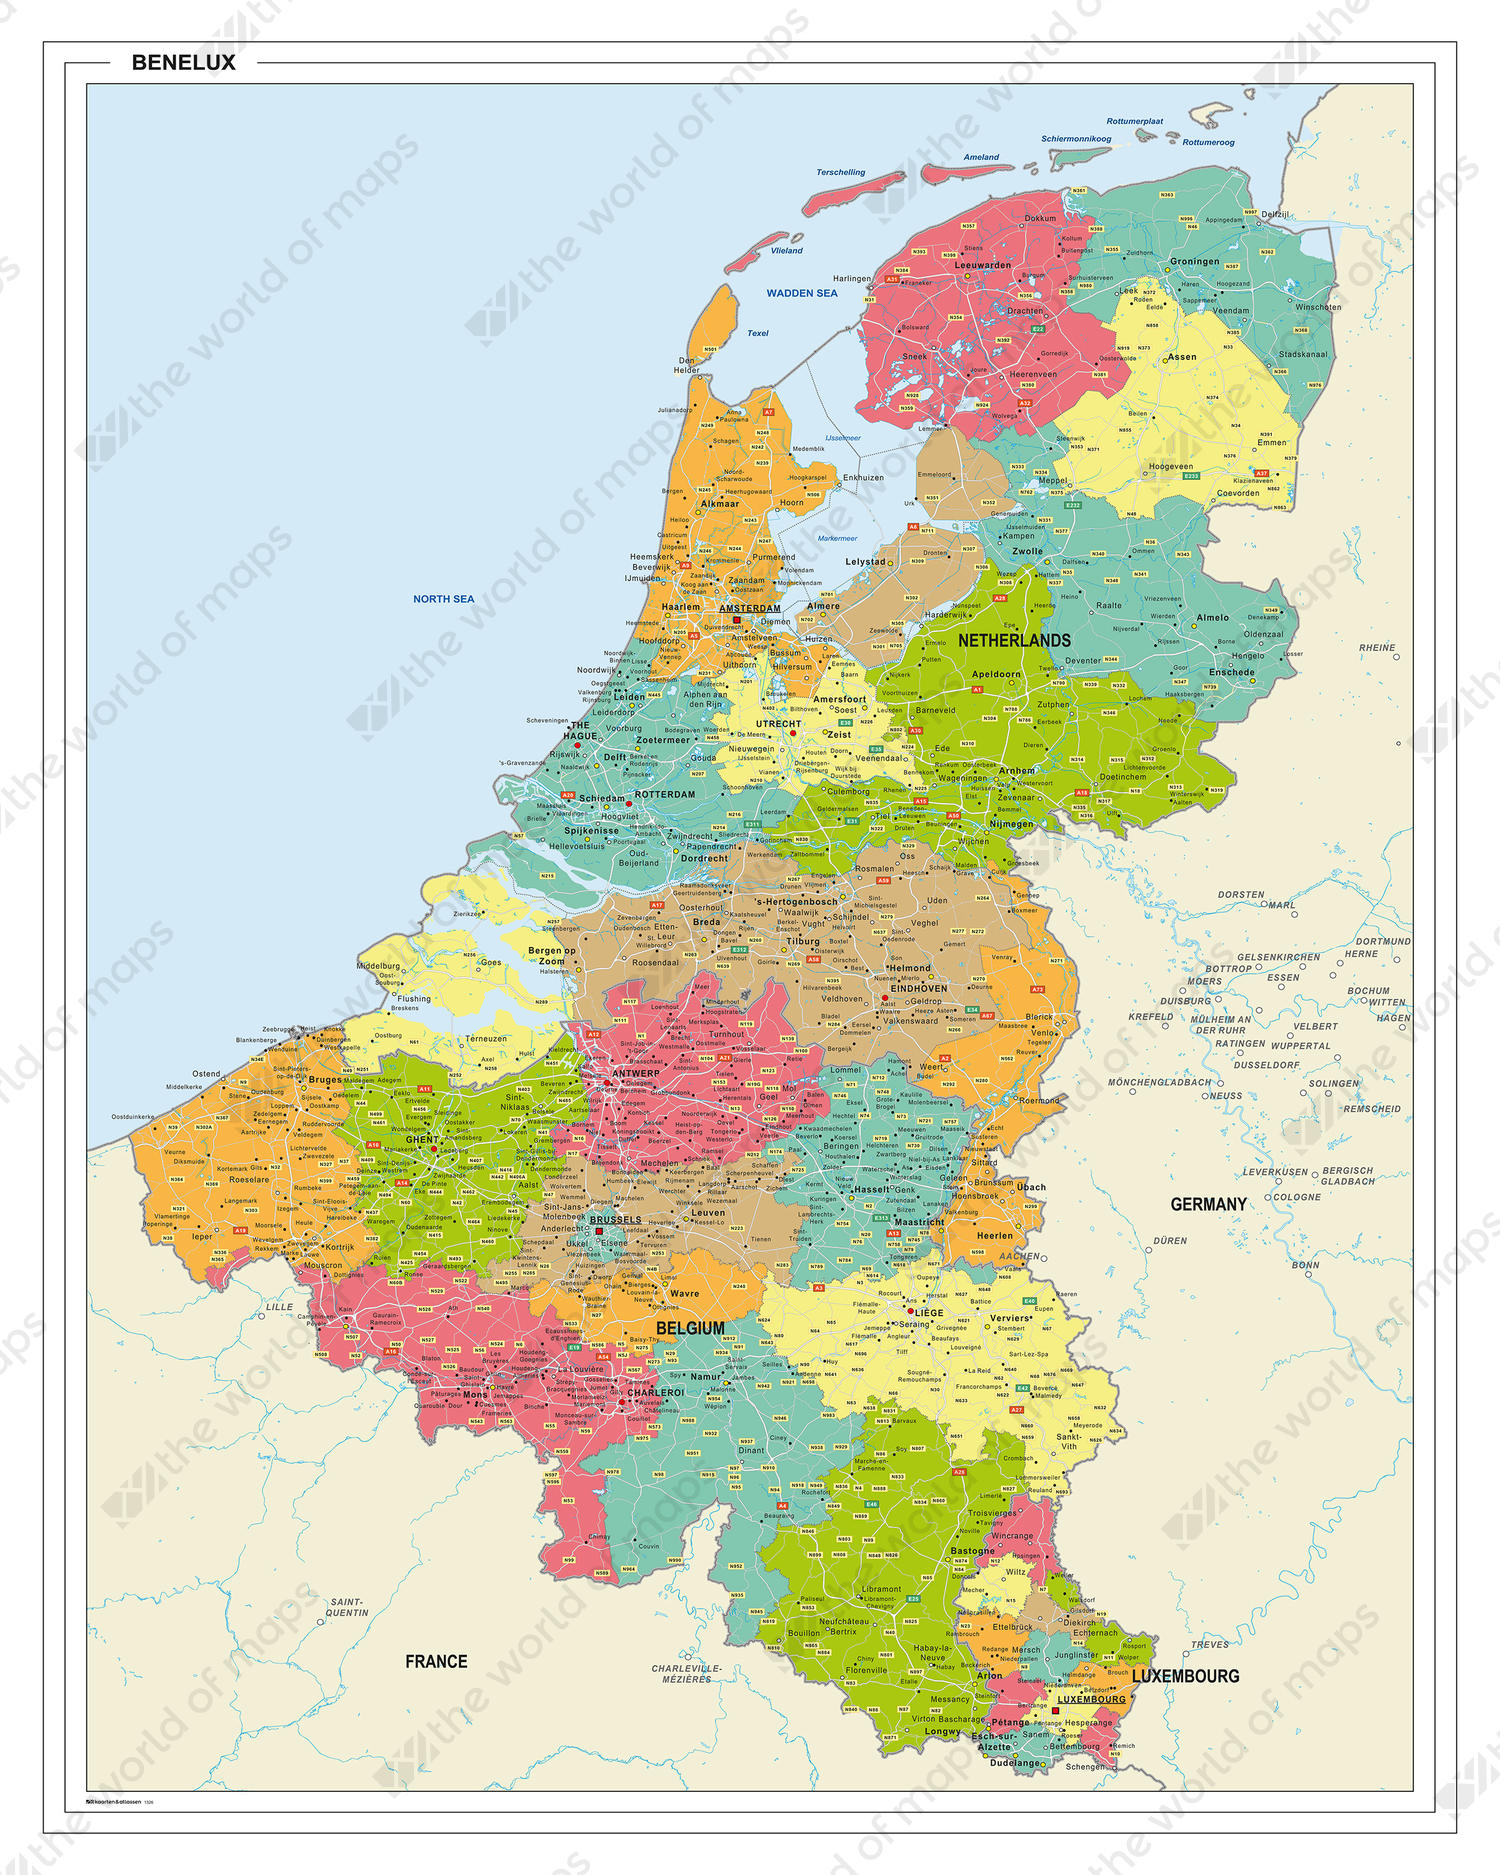 Digital colorful map Benelux